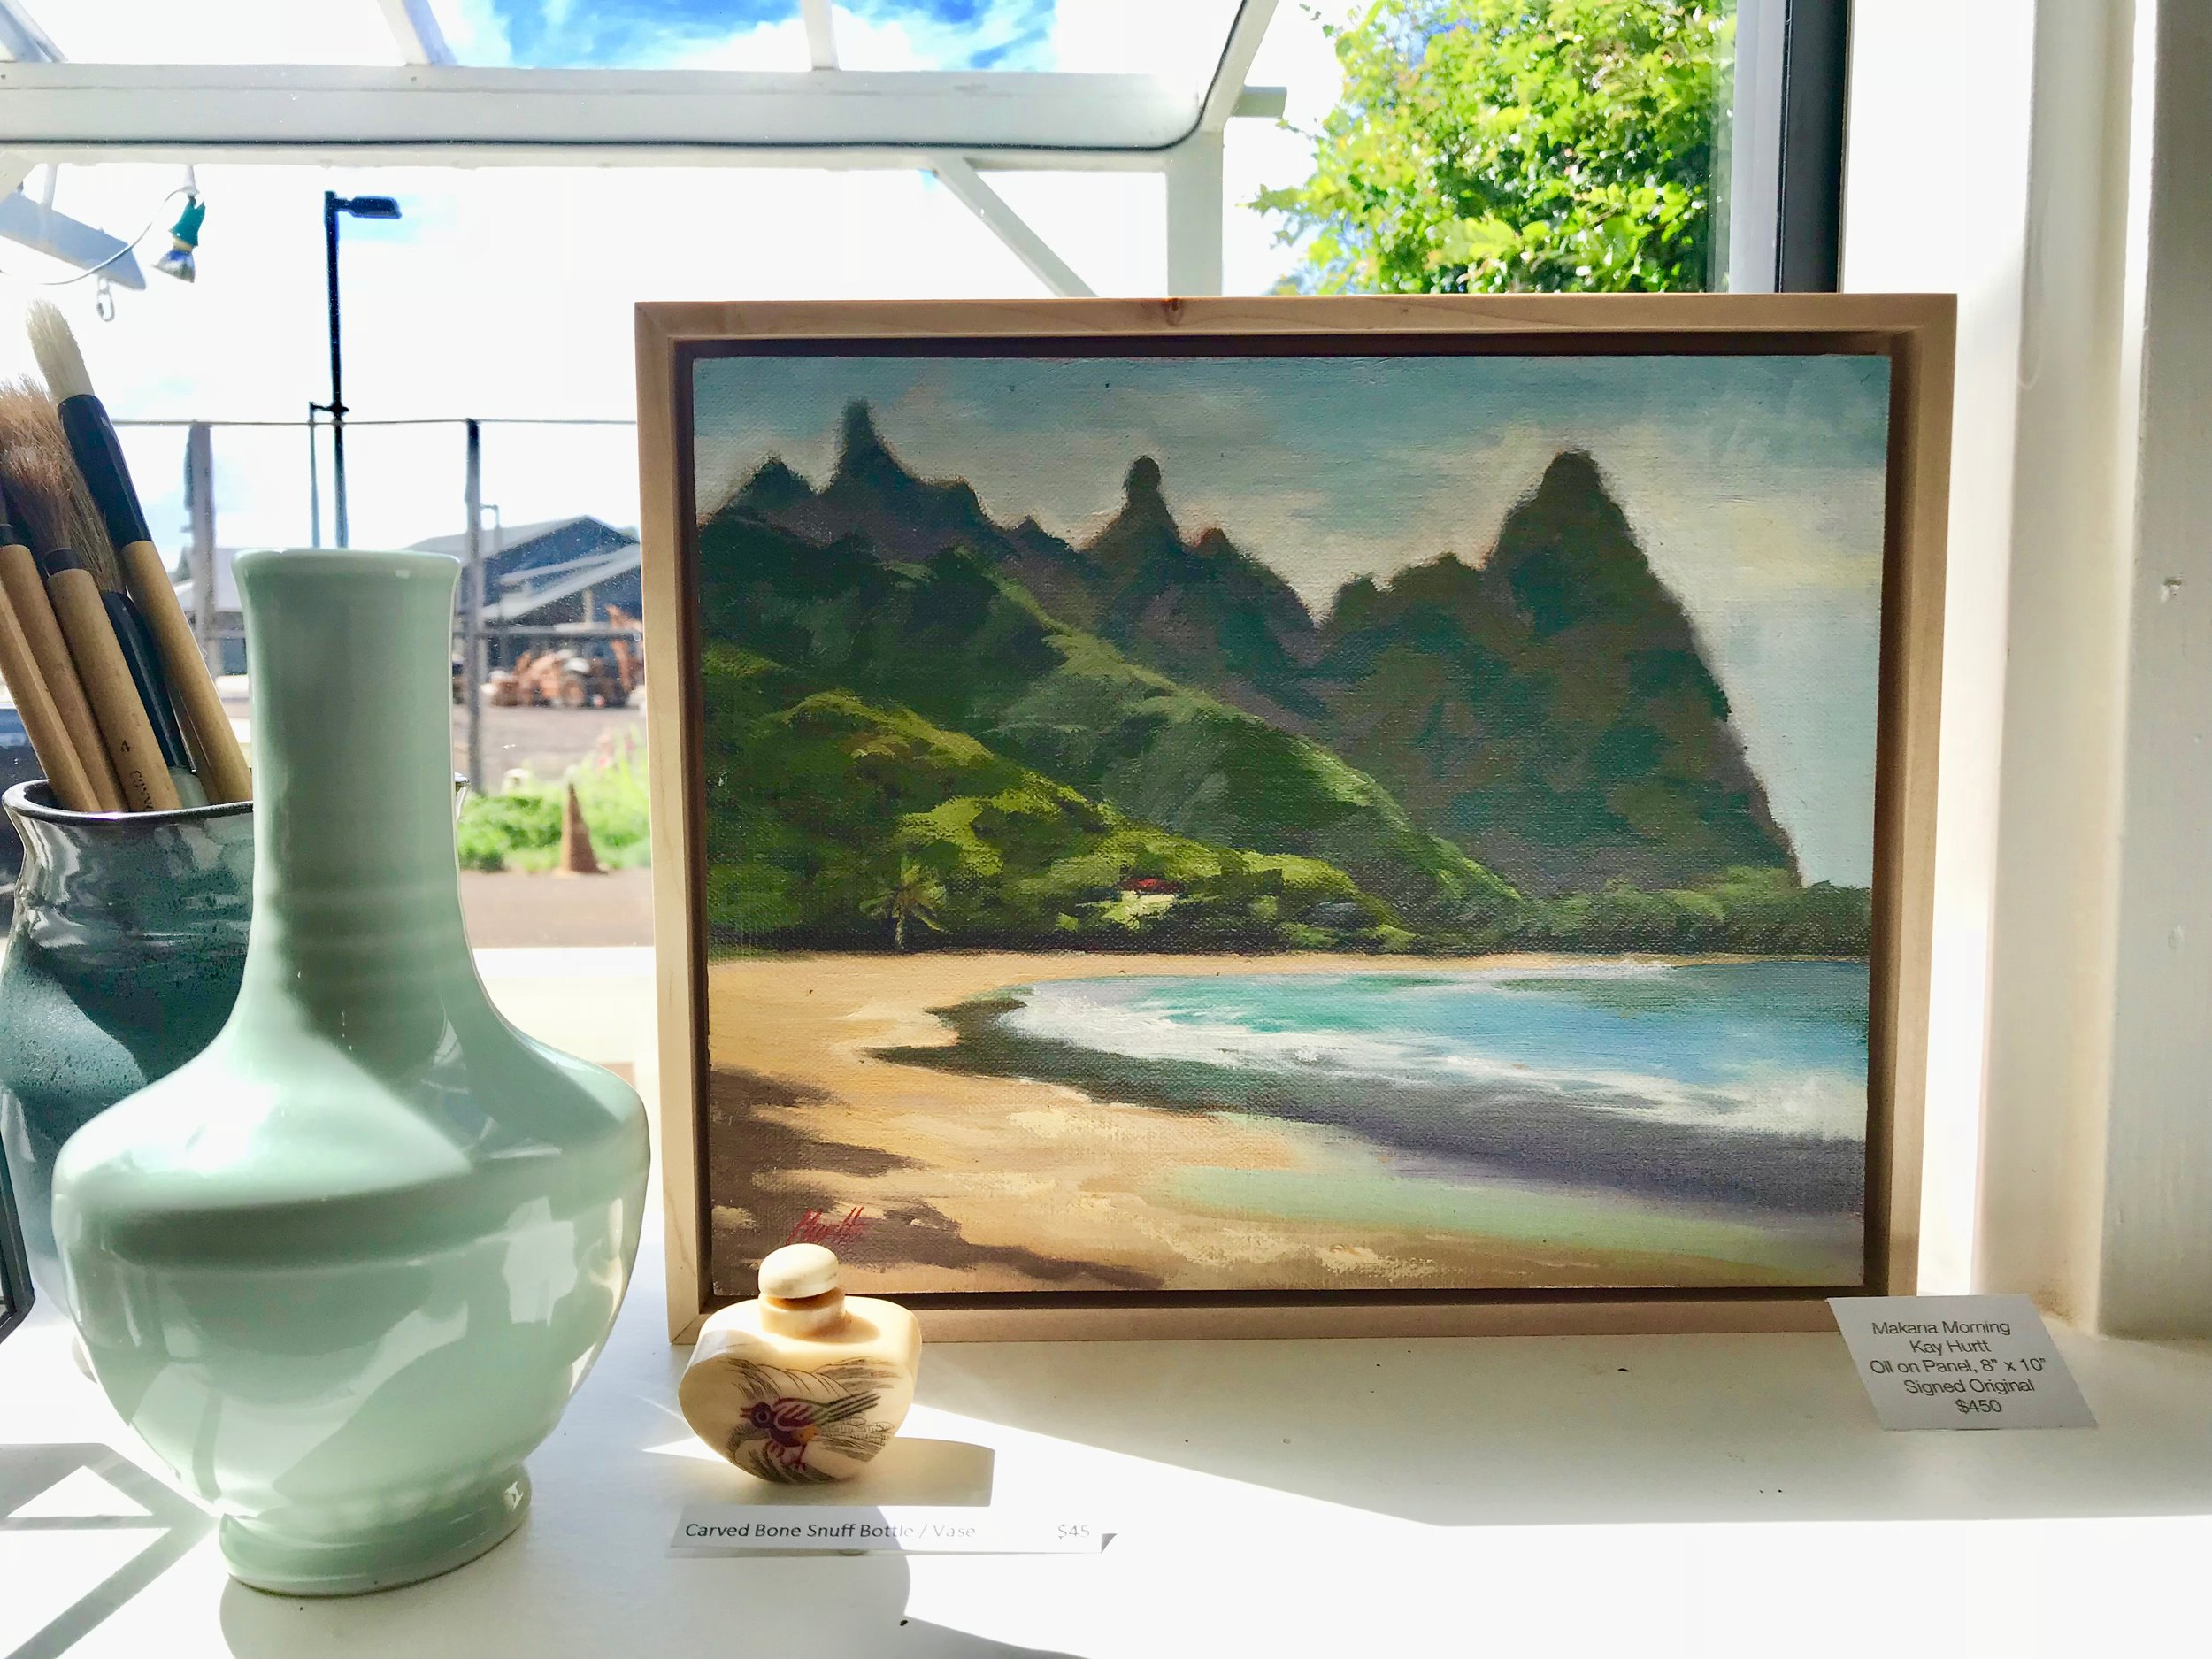 Painting of Hanalei and ceramic vase